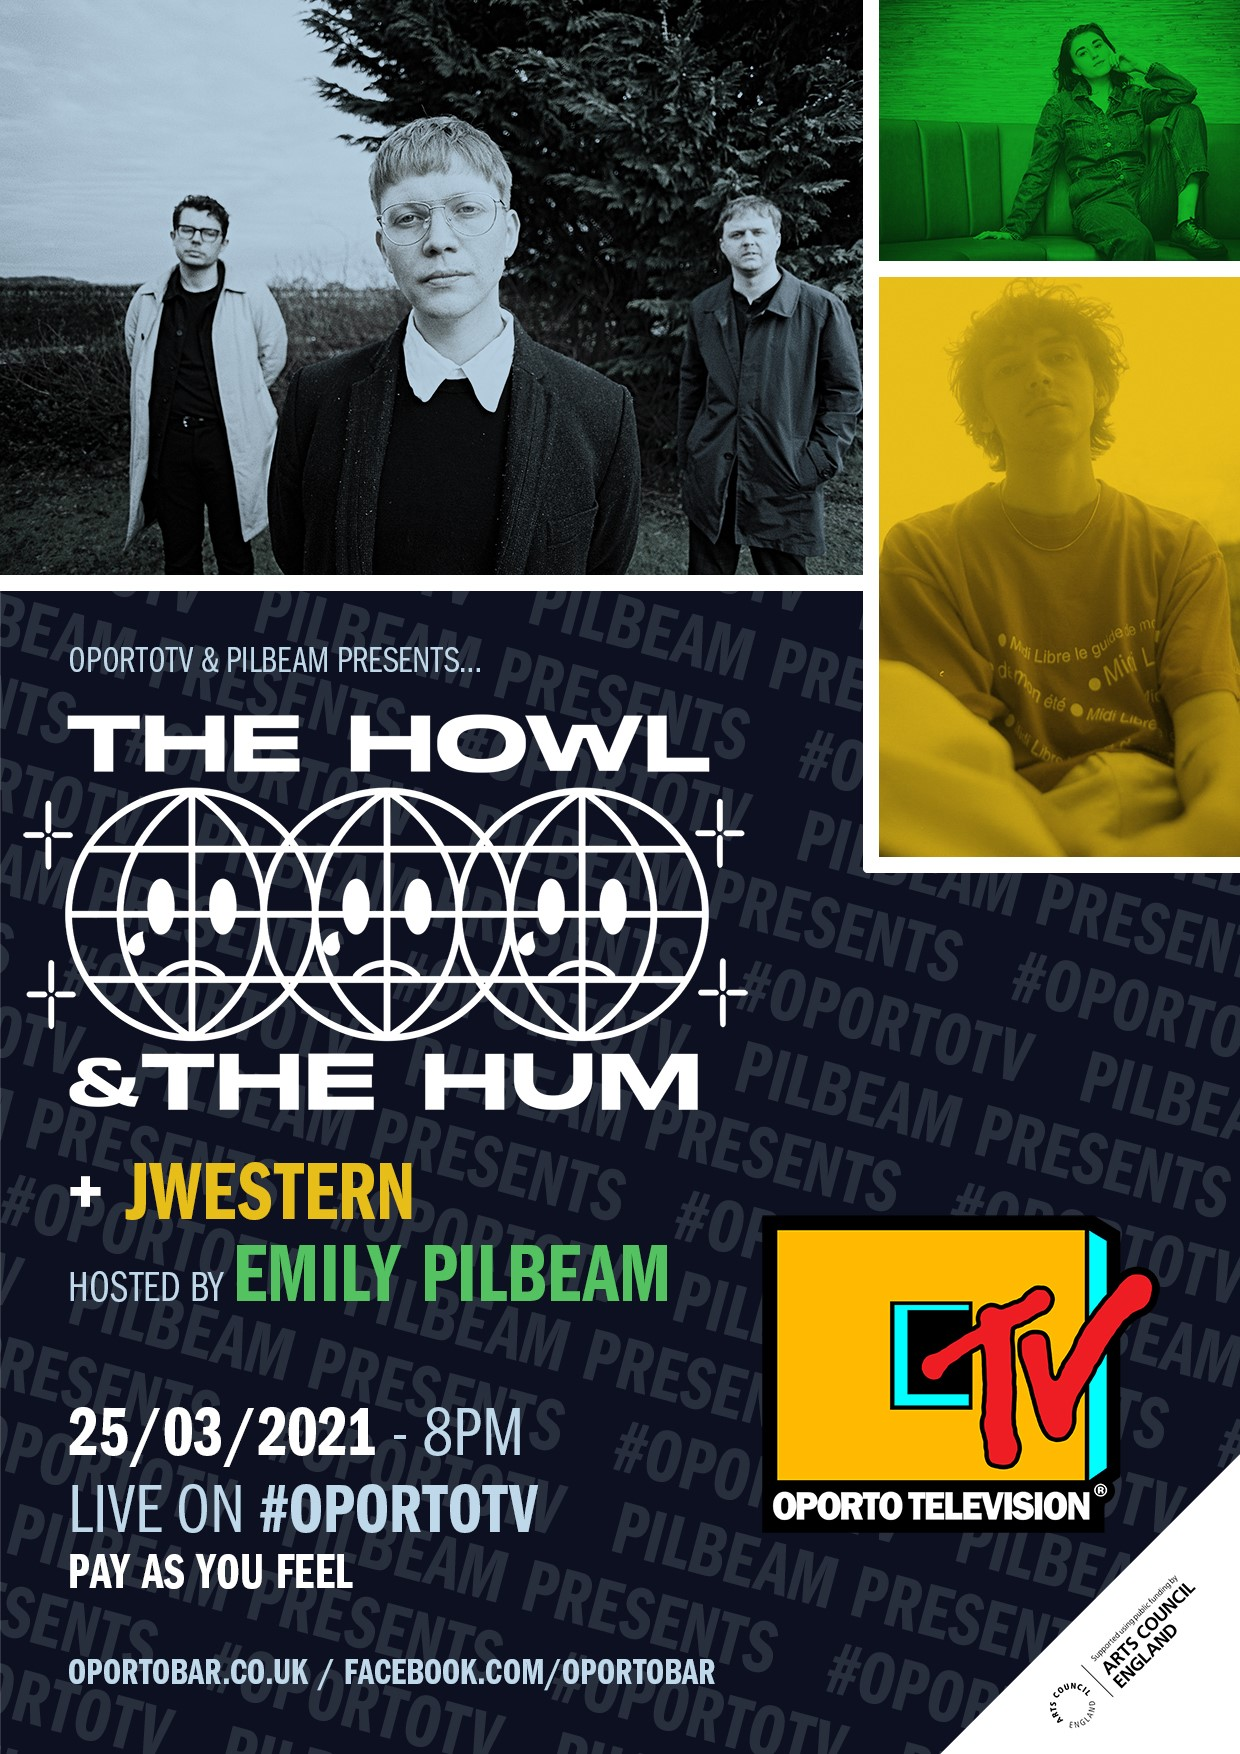 Pilbeam Presents The Howl & The Hum and JWestern on #OportoTV